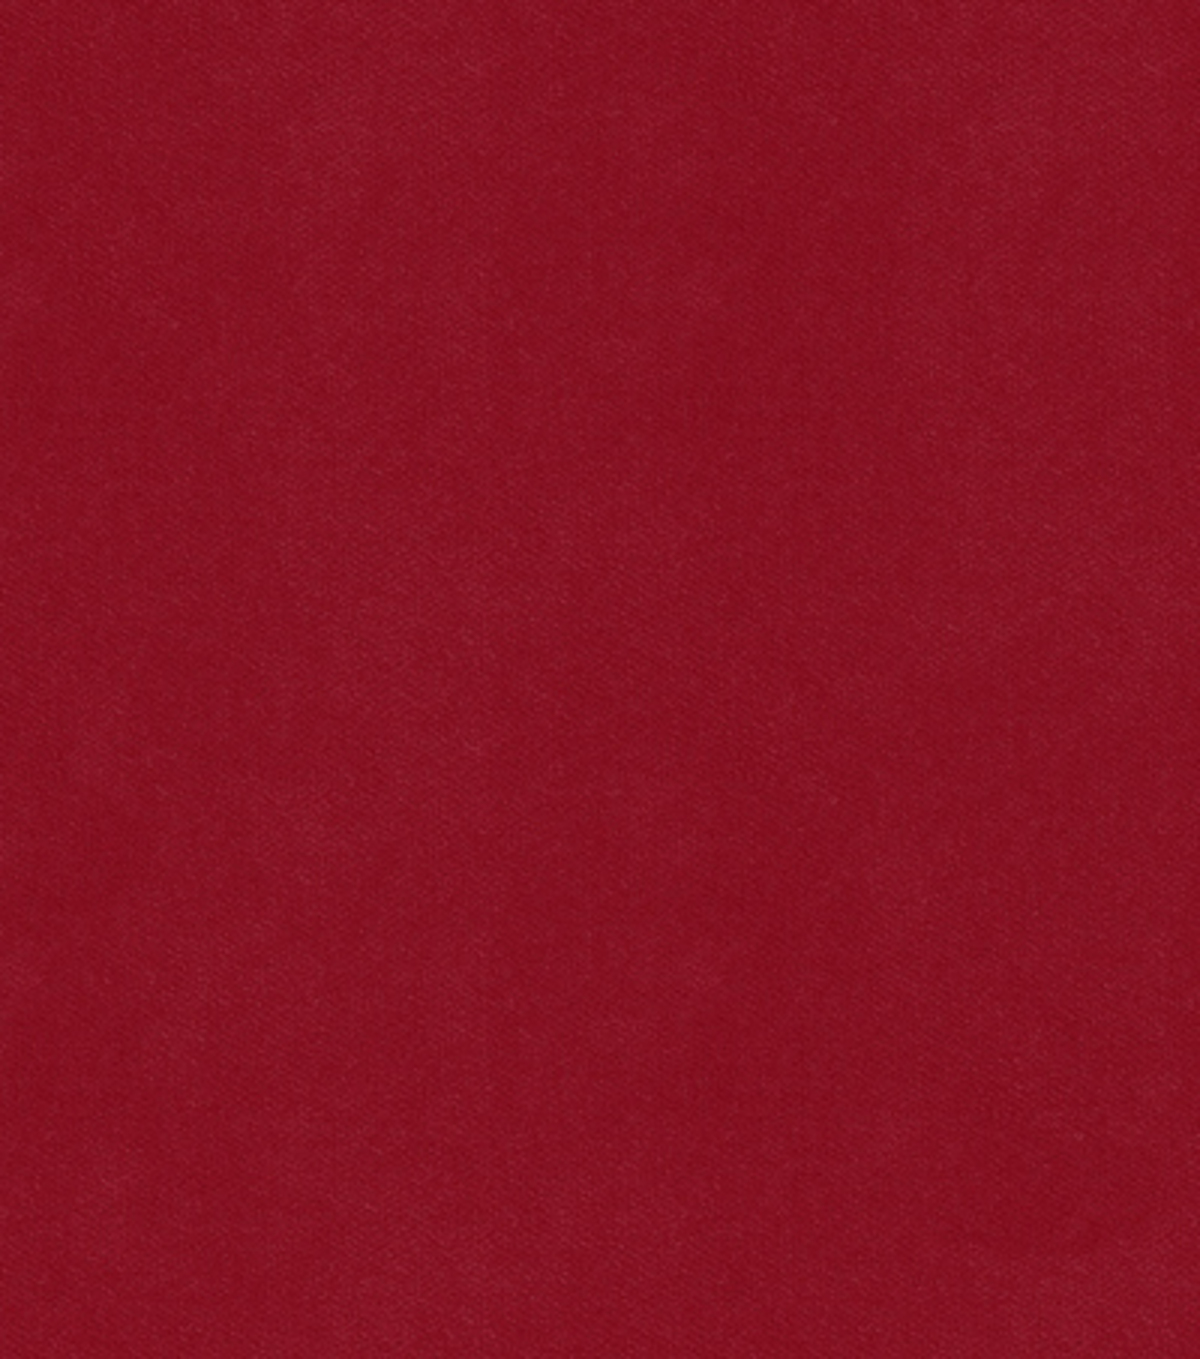 Home Decor 8\u0022x8\u0022 Fabric Swatch-Como-991-Red